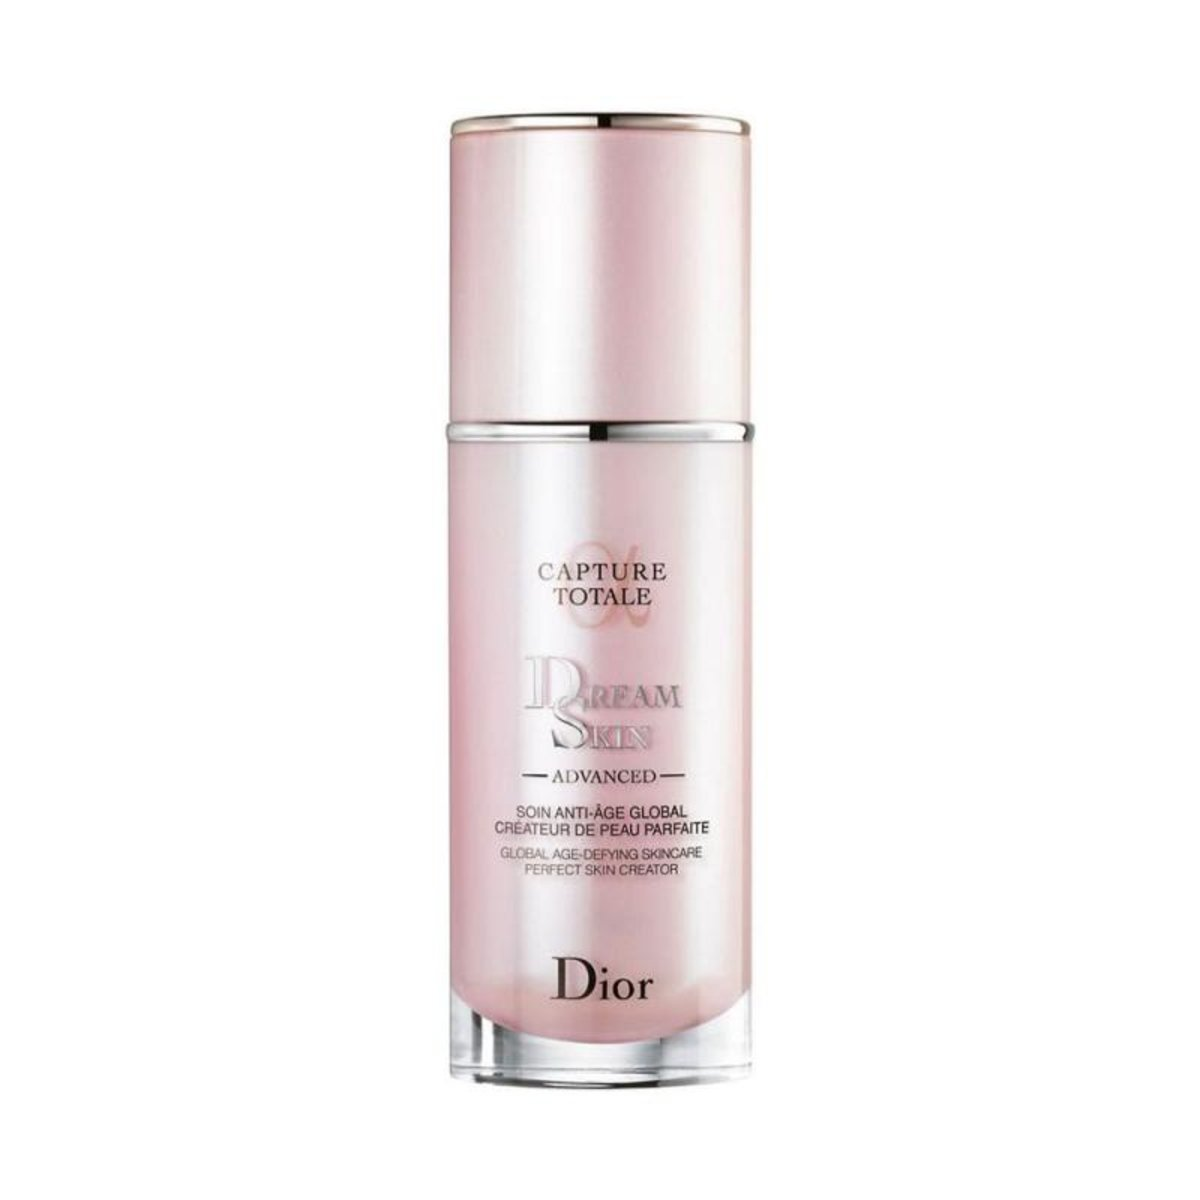 Capture Totale Dreamskin Advanced Perfect Skin Creator 30ml [Parallel Import]